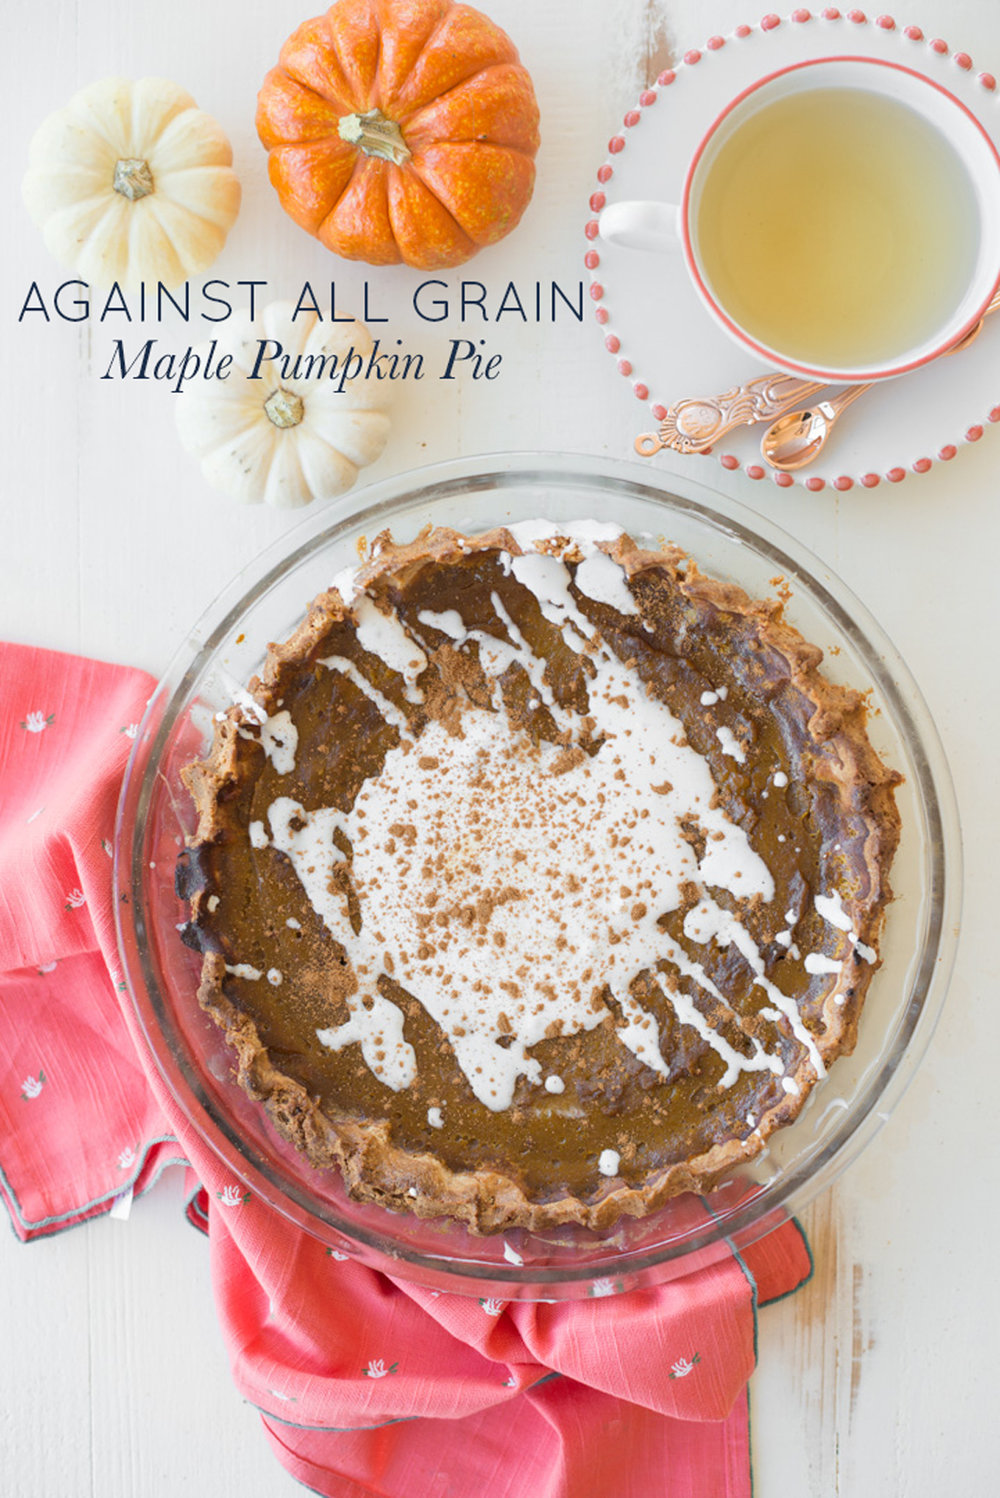 Against All Grain Maple Pumpkin Pie (Grain-Free, Gluten-Free, Dairy-Free) is the perfect paleo recipe for your holiday table. #realfoodwholelife #realfoodwholeliferecipe #glutenfree #dairyfree #healthy #clean-eating #fall #fallrecipe #pumpkin #pumpkinrecipe #halloween #halloweenparty #healthyhalloween #thanskgiving #healthythanksgiving #pumpkinspice